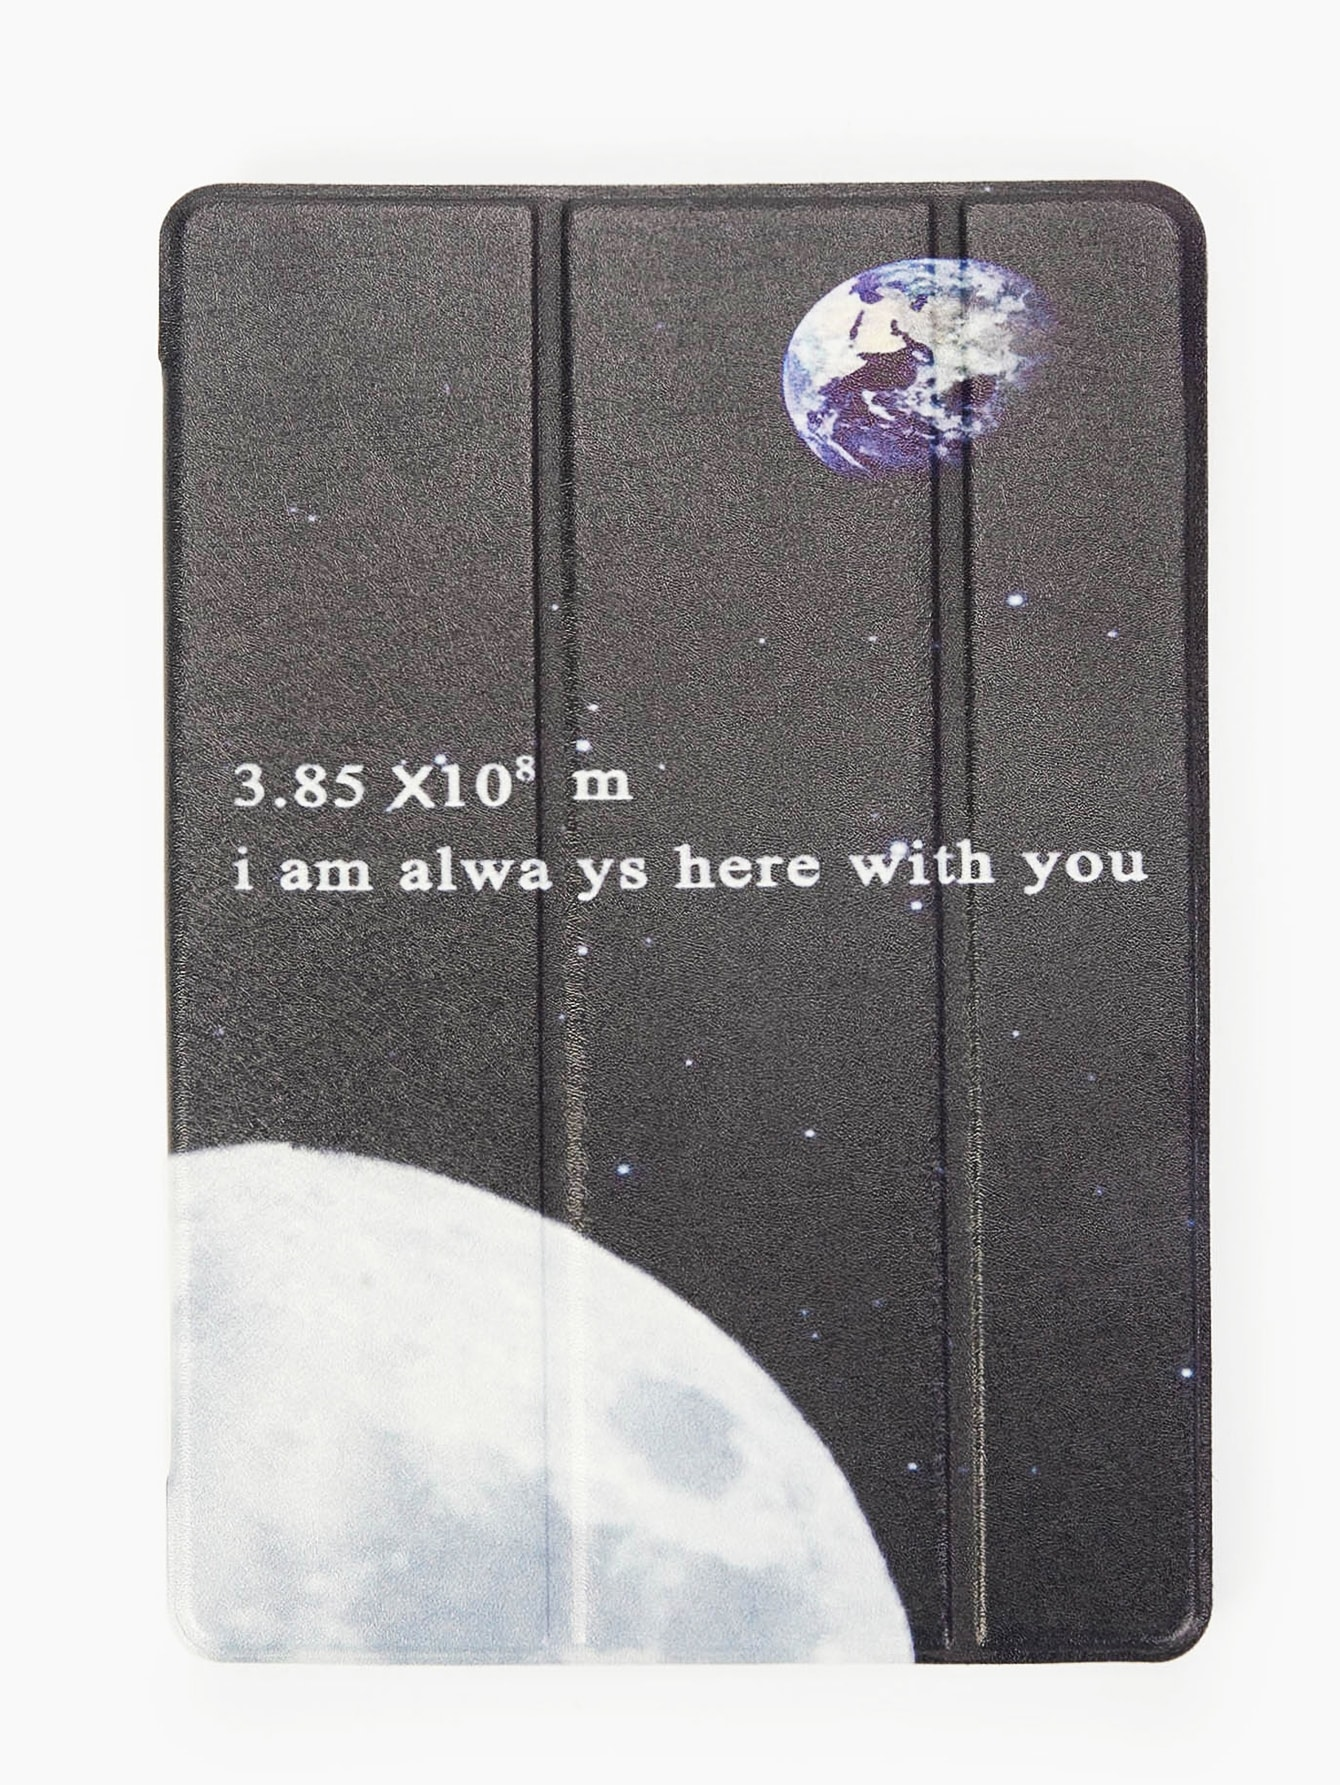 Letter & Planet Pattern iPad Case null